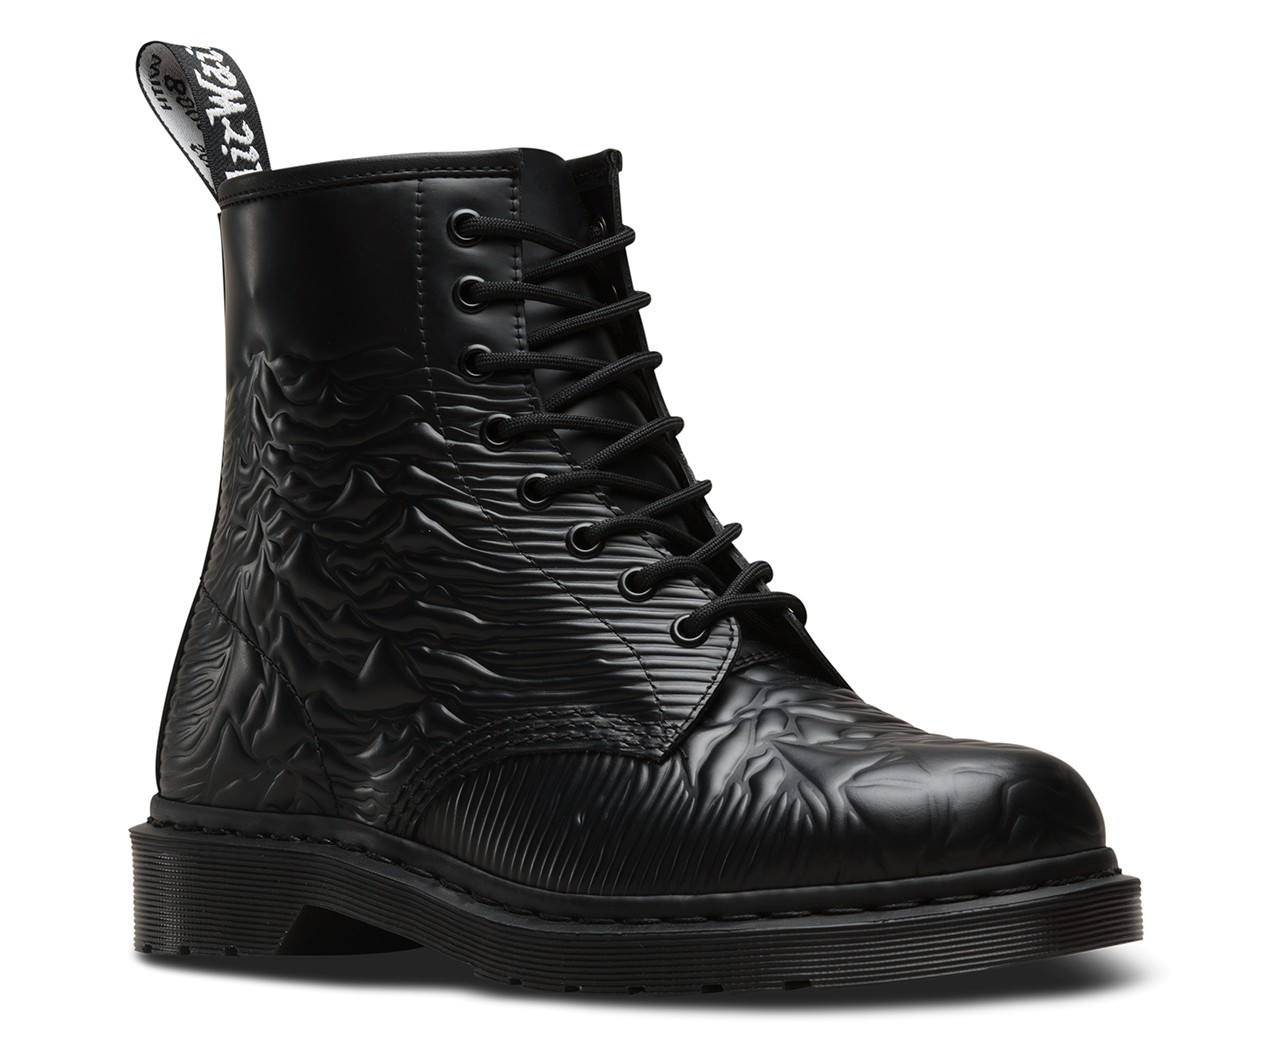 Stiefel - Dr.Martens Joy Devision Smooth Unknown Black  - Onlineshop Olden Mea